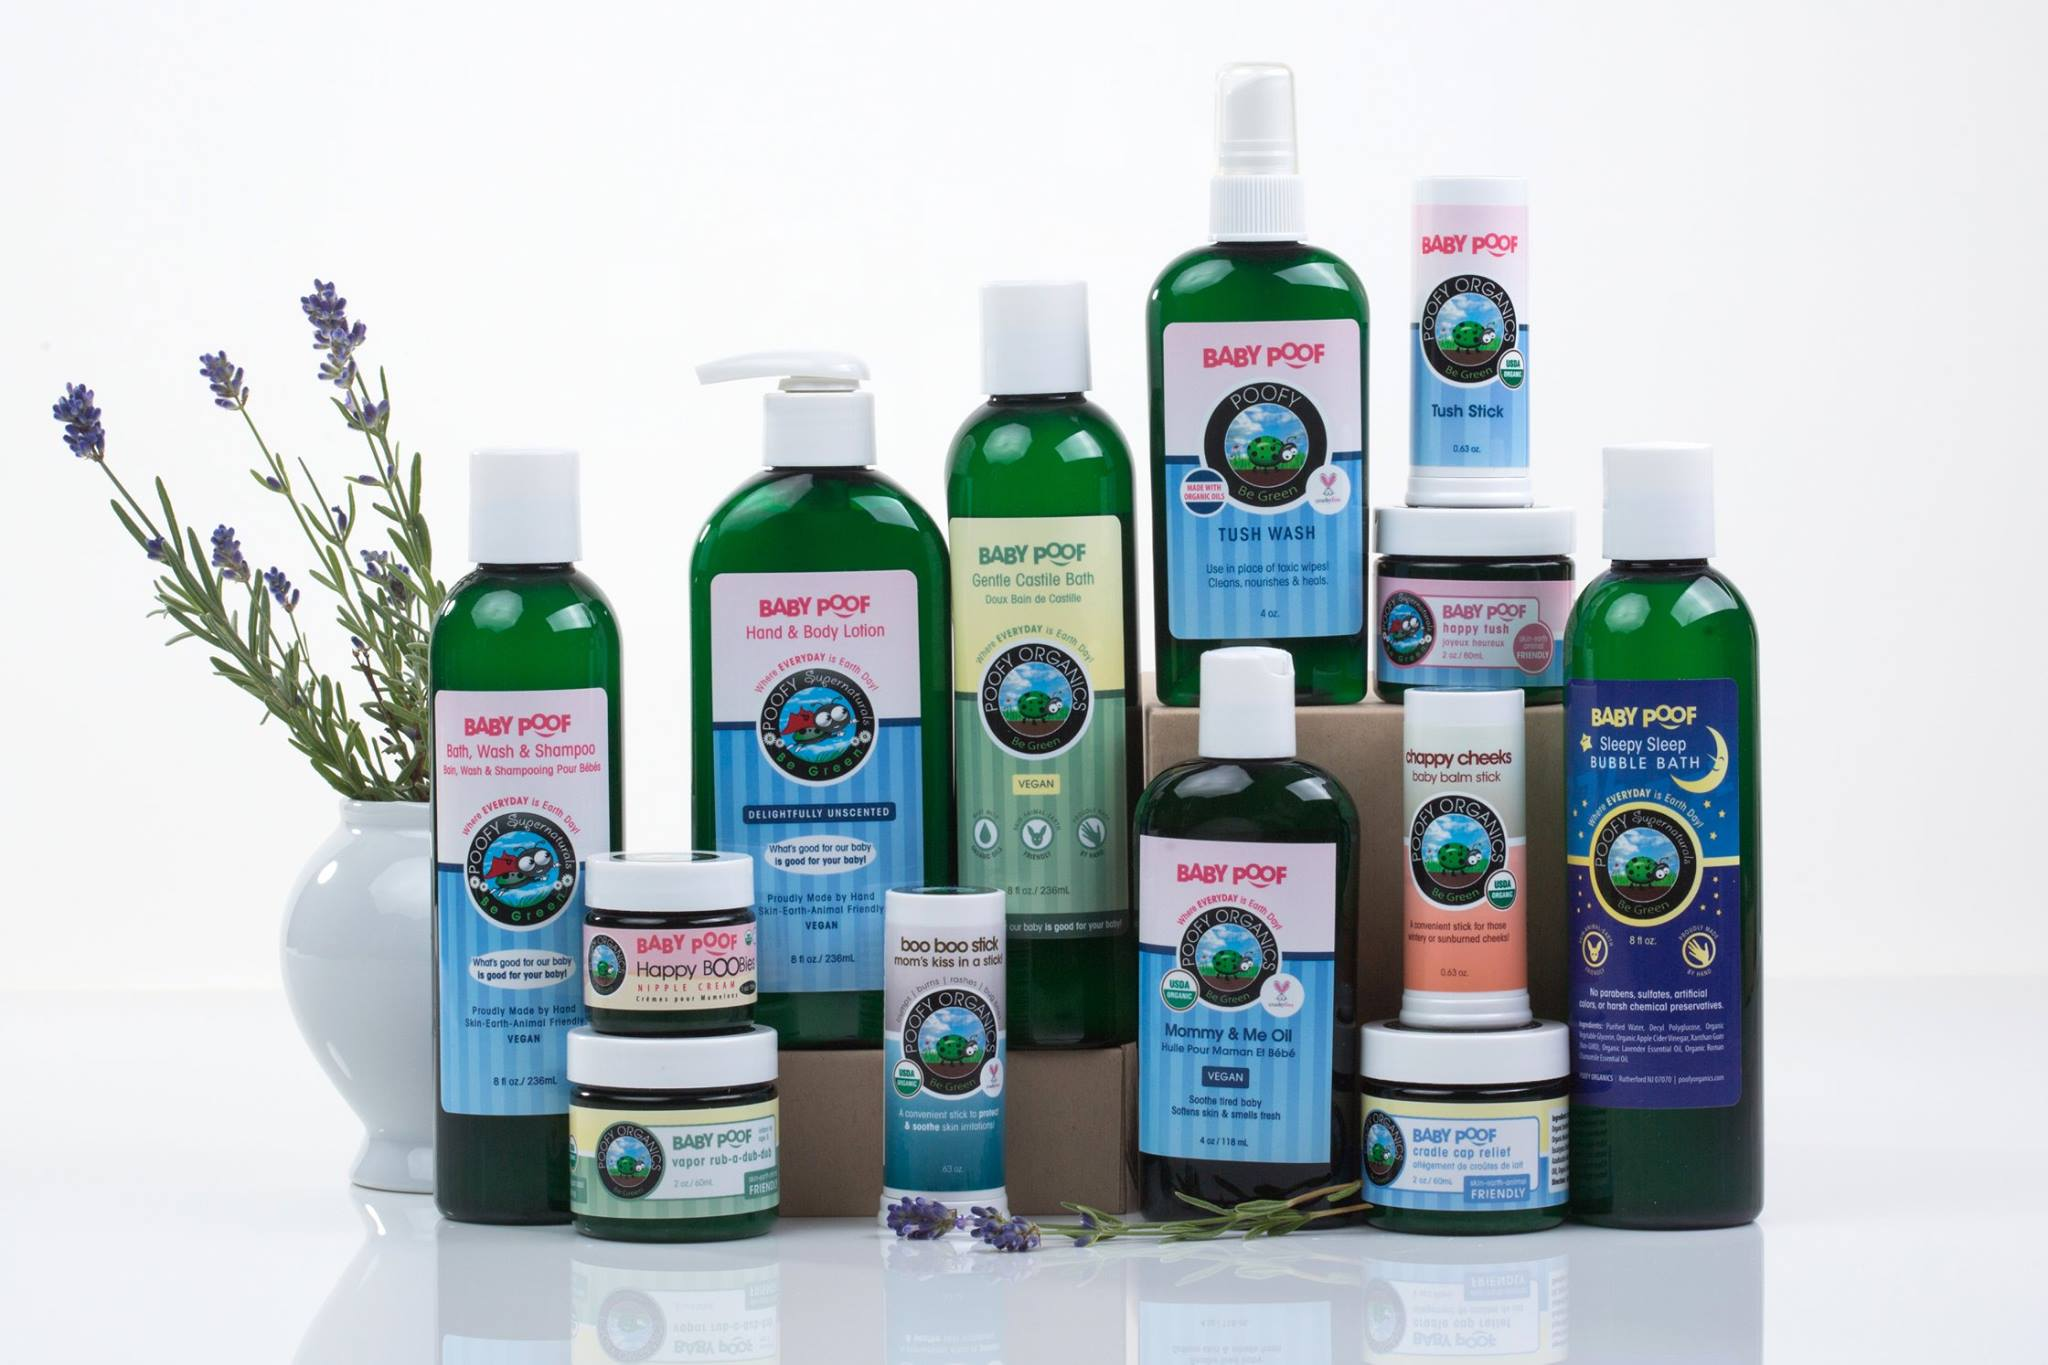 Poofy Organics Toxin-Free Home Bath and Body Baby Kid Child